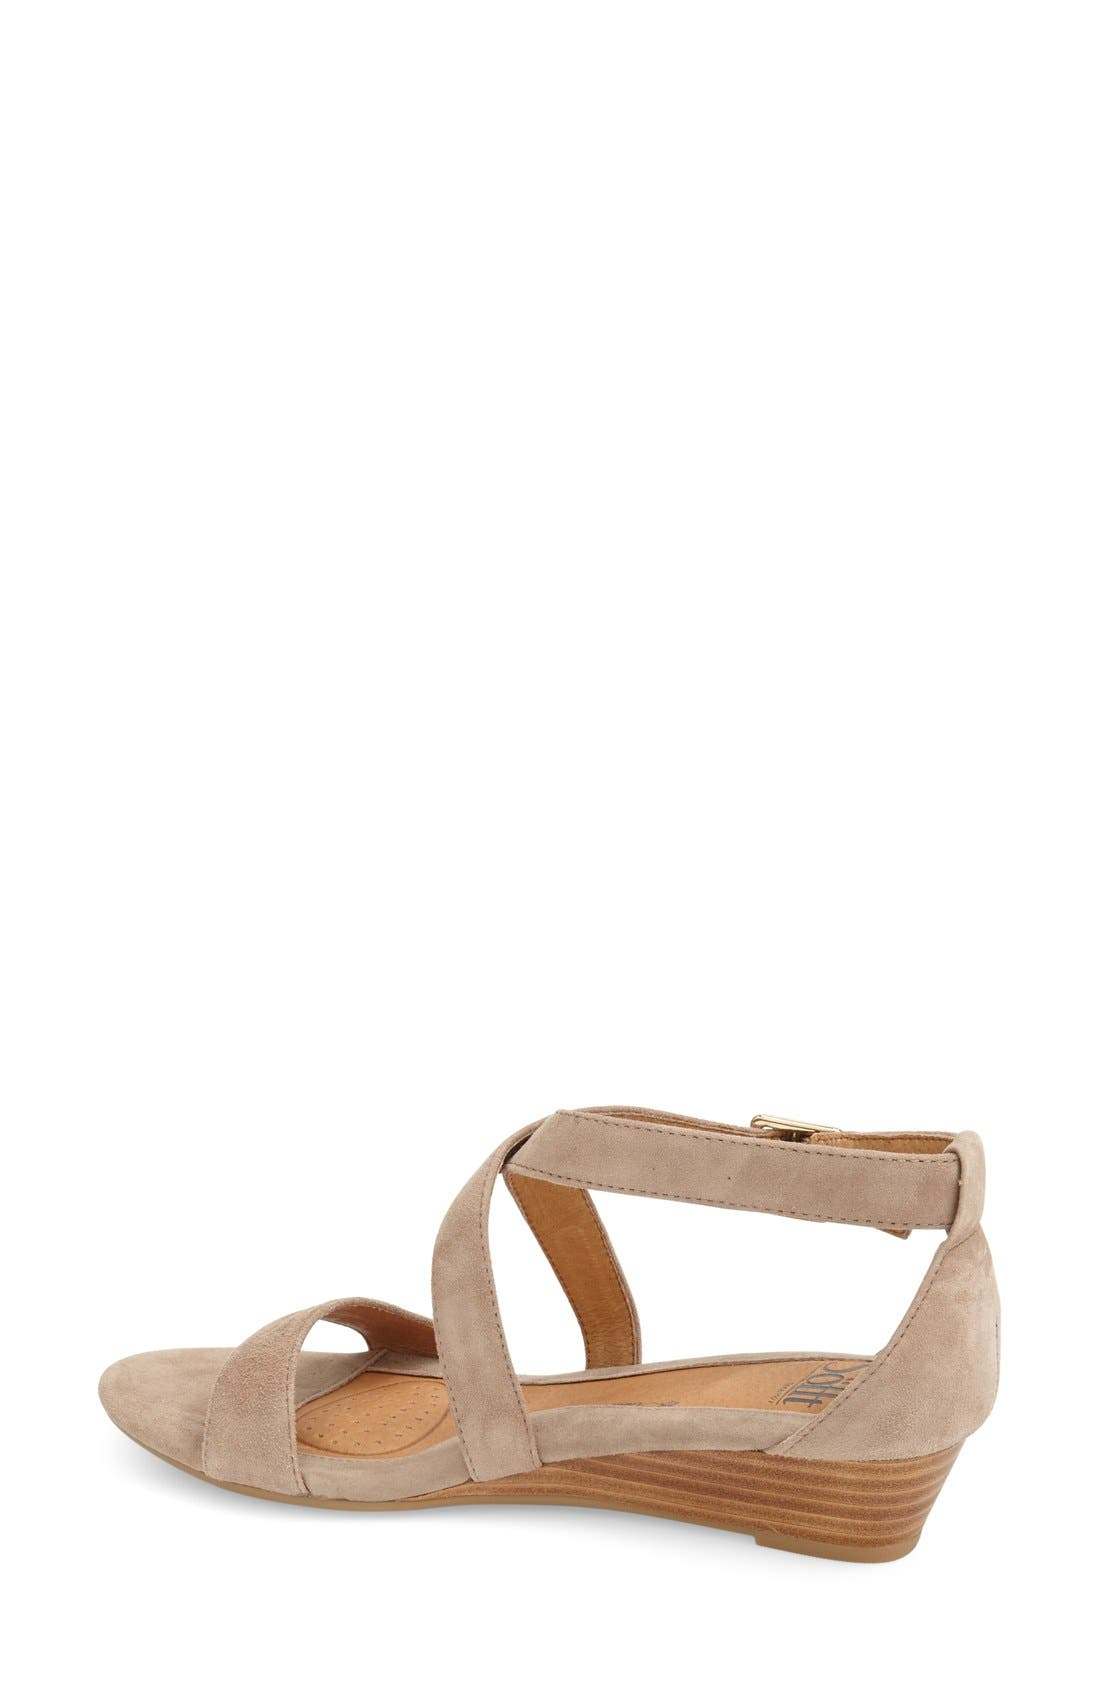 'Innis' Low Wedge Sandal,                             Alternate thumbnail 21, color,